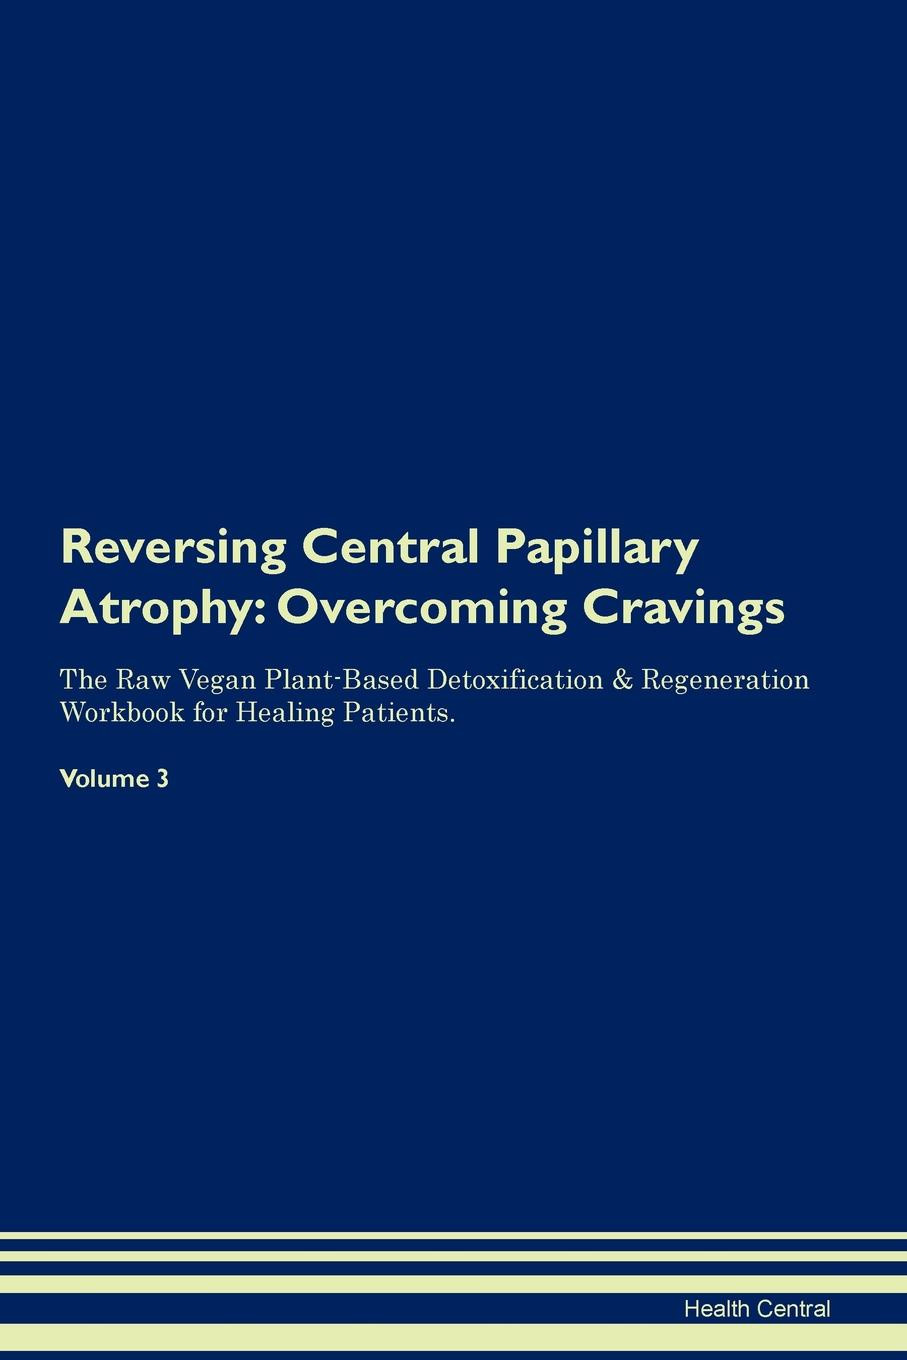 Фото - Health Central Reversing Central Papillary Atrophy. Overcoming Cravings The Raw Vegan Plant-Based Detoxification & Regeneration Workbook for Healing Patients. Volume 3 health central reversing spinocerebellar ataxia overcoming cravings the raw vegan plant based detoxification